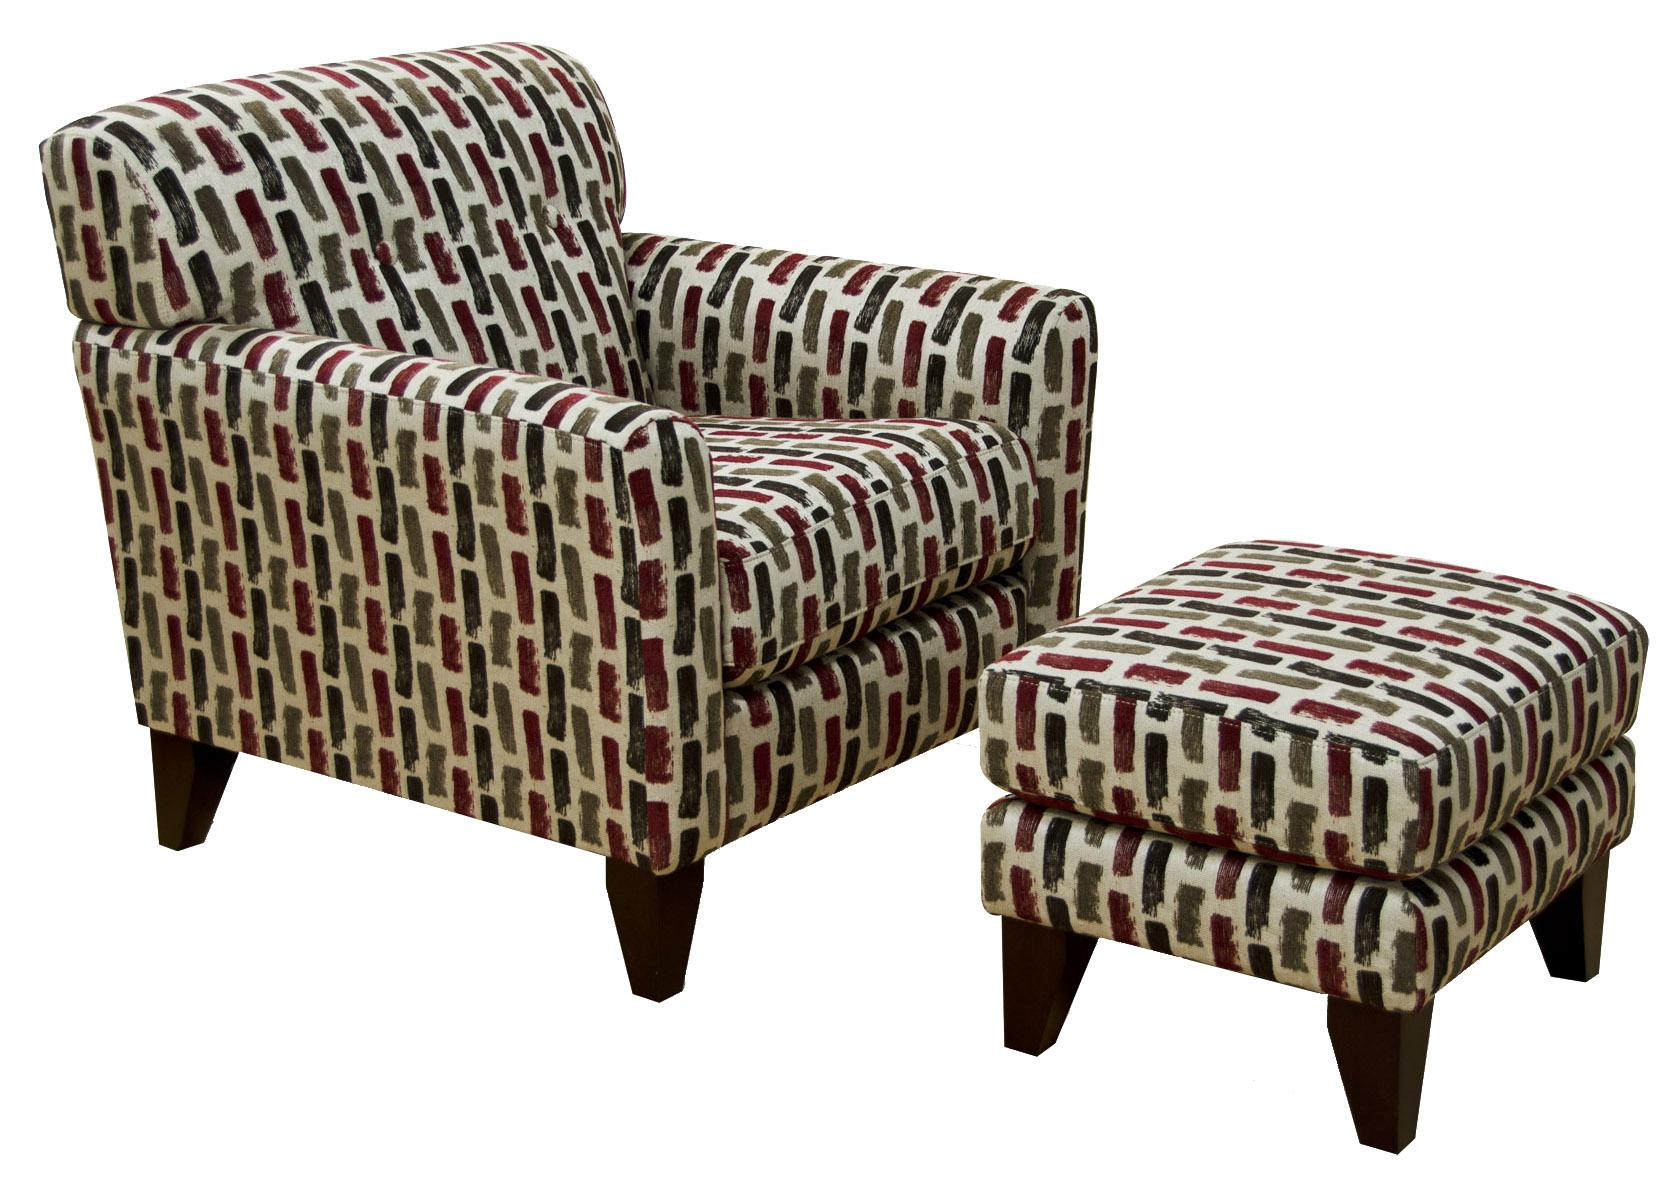 England Shockley Chair and Ottoman - Item Number: 7334+37